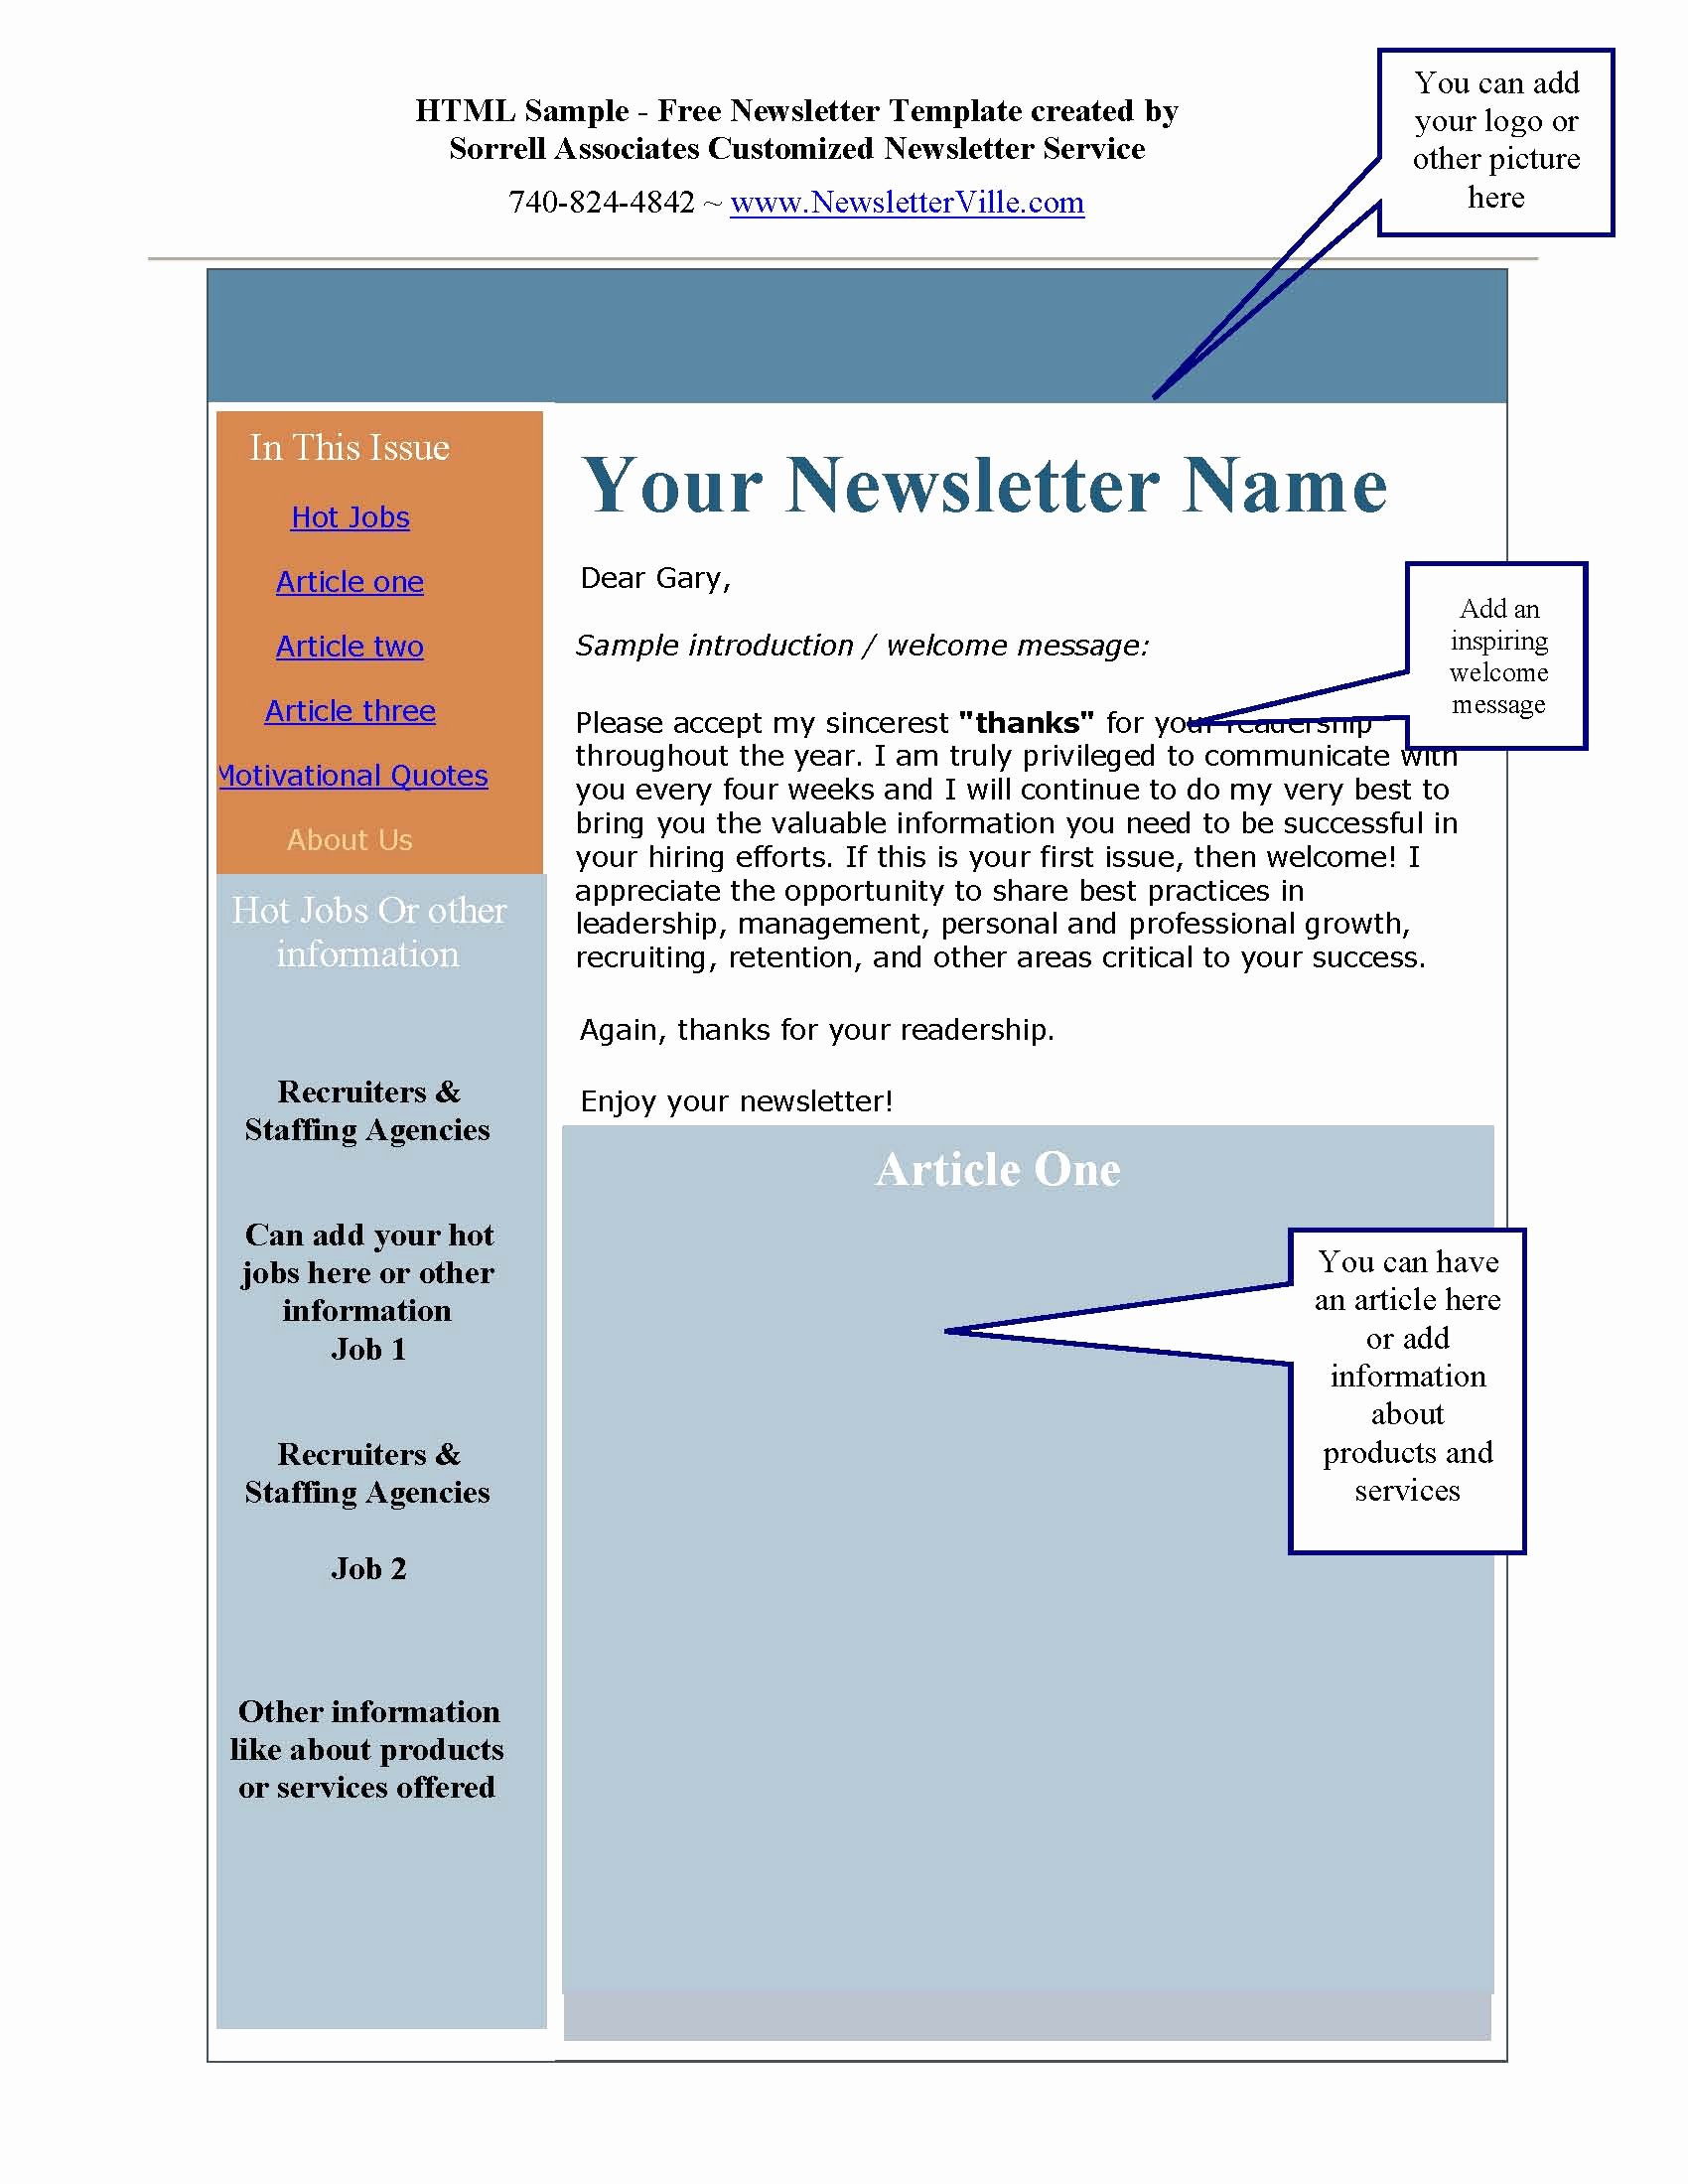 Printable Newsletter Templates Free Unique Newsletter & Blog Articles Provided Plus Free Newsletter